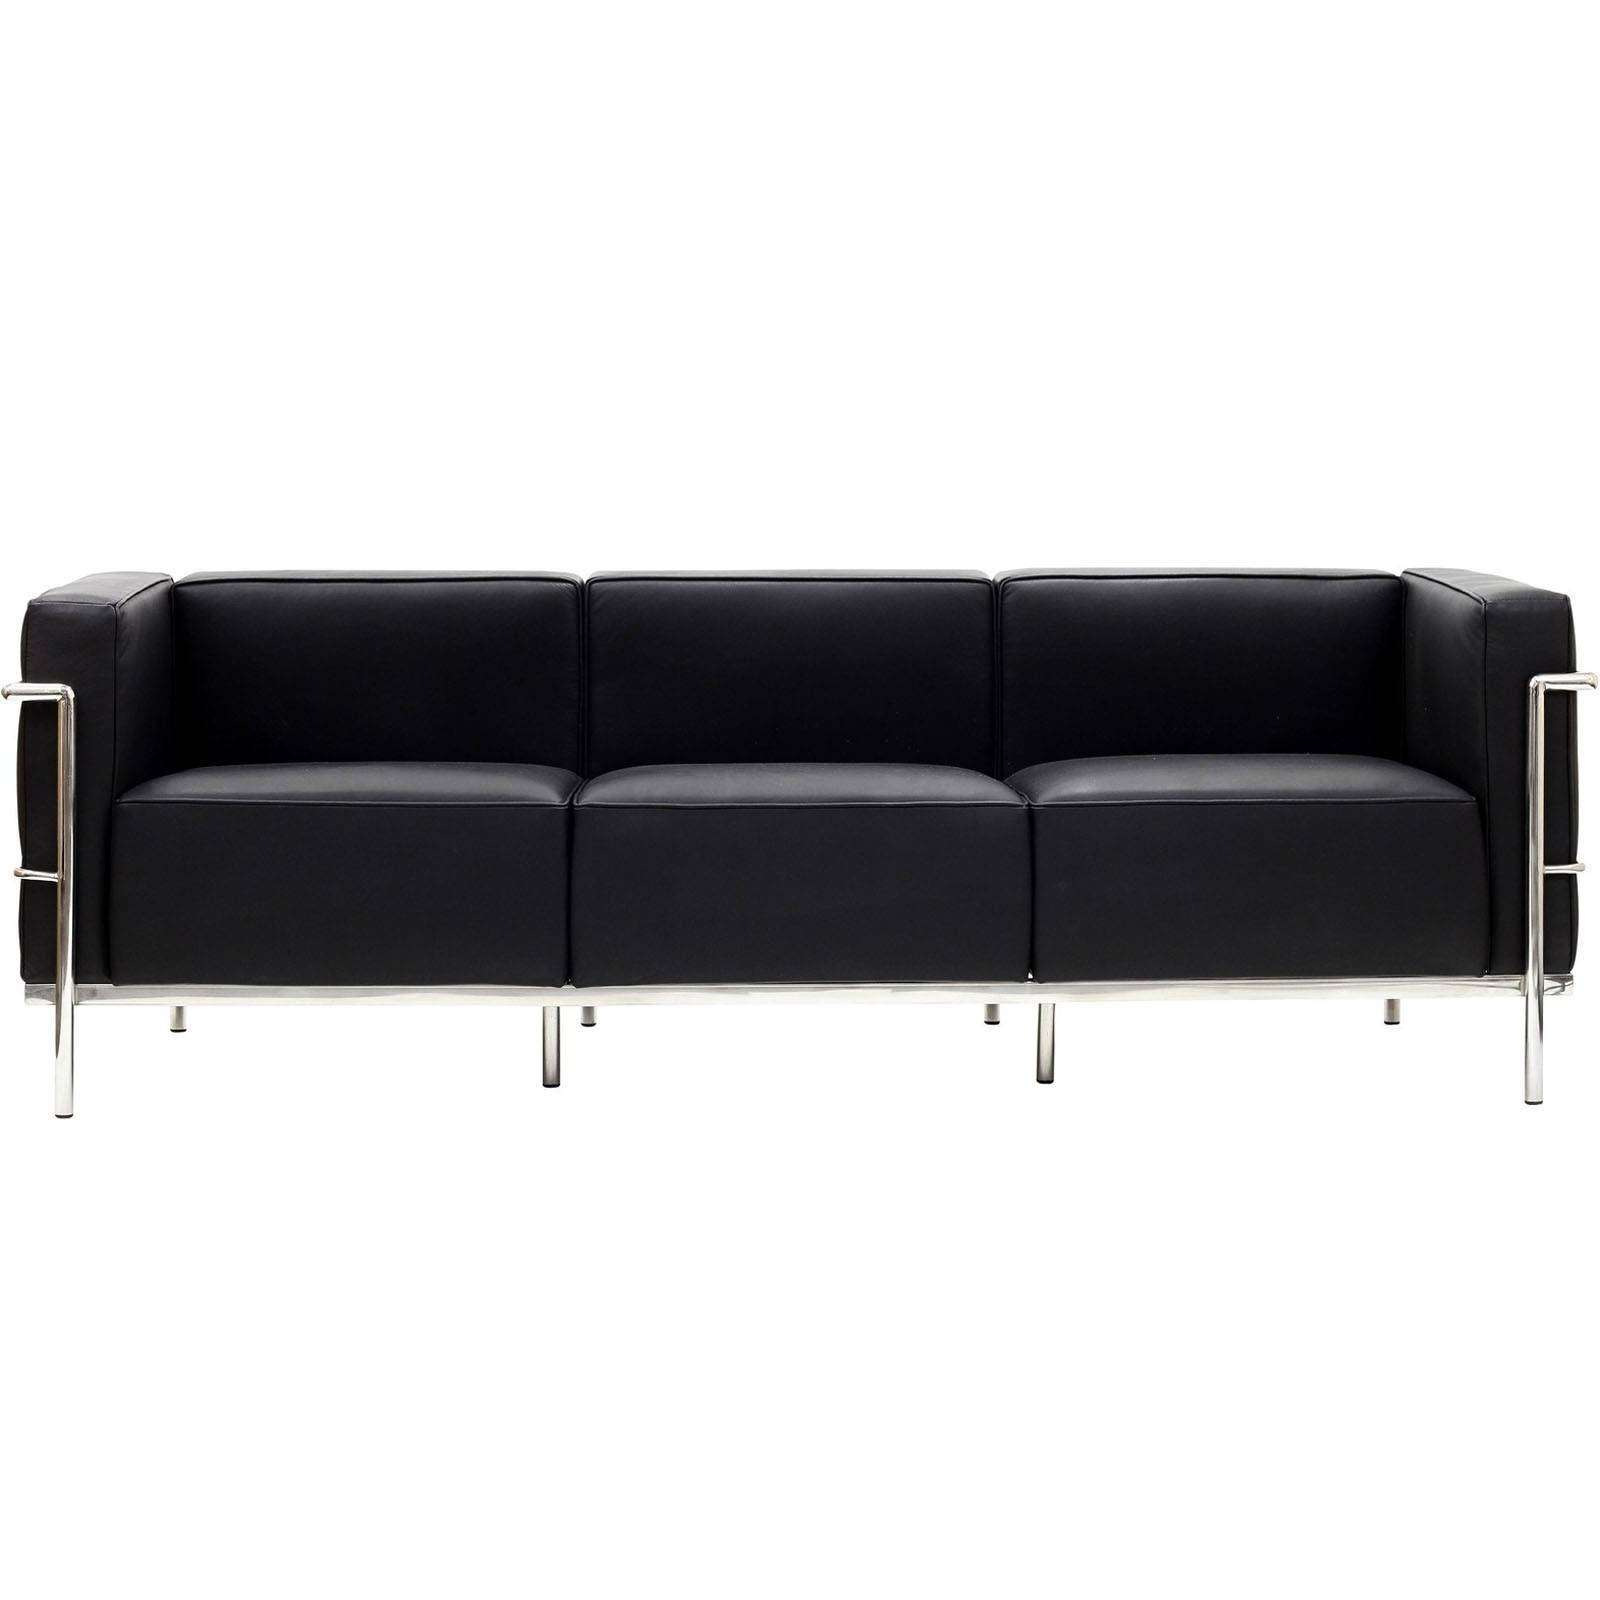 Le Corbusier Stil : le corbusier style lc3 sofa leather ~ Michelbontemps.com Haus und Dekorationen